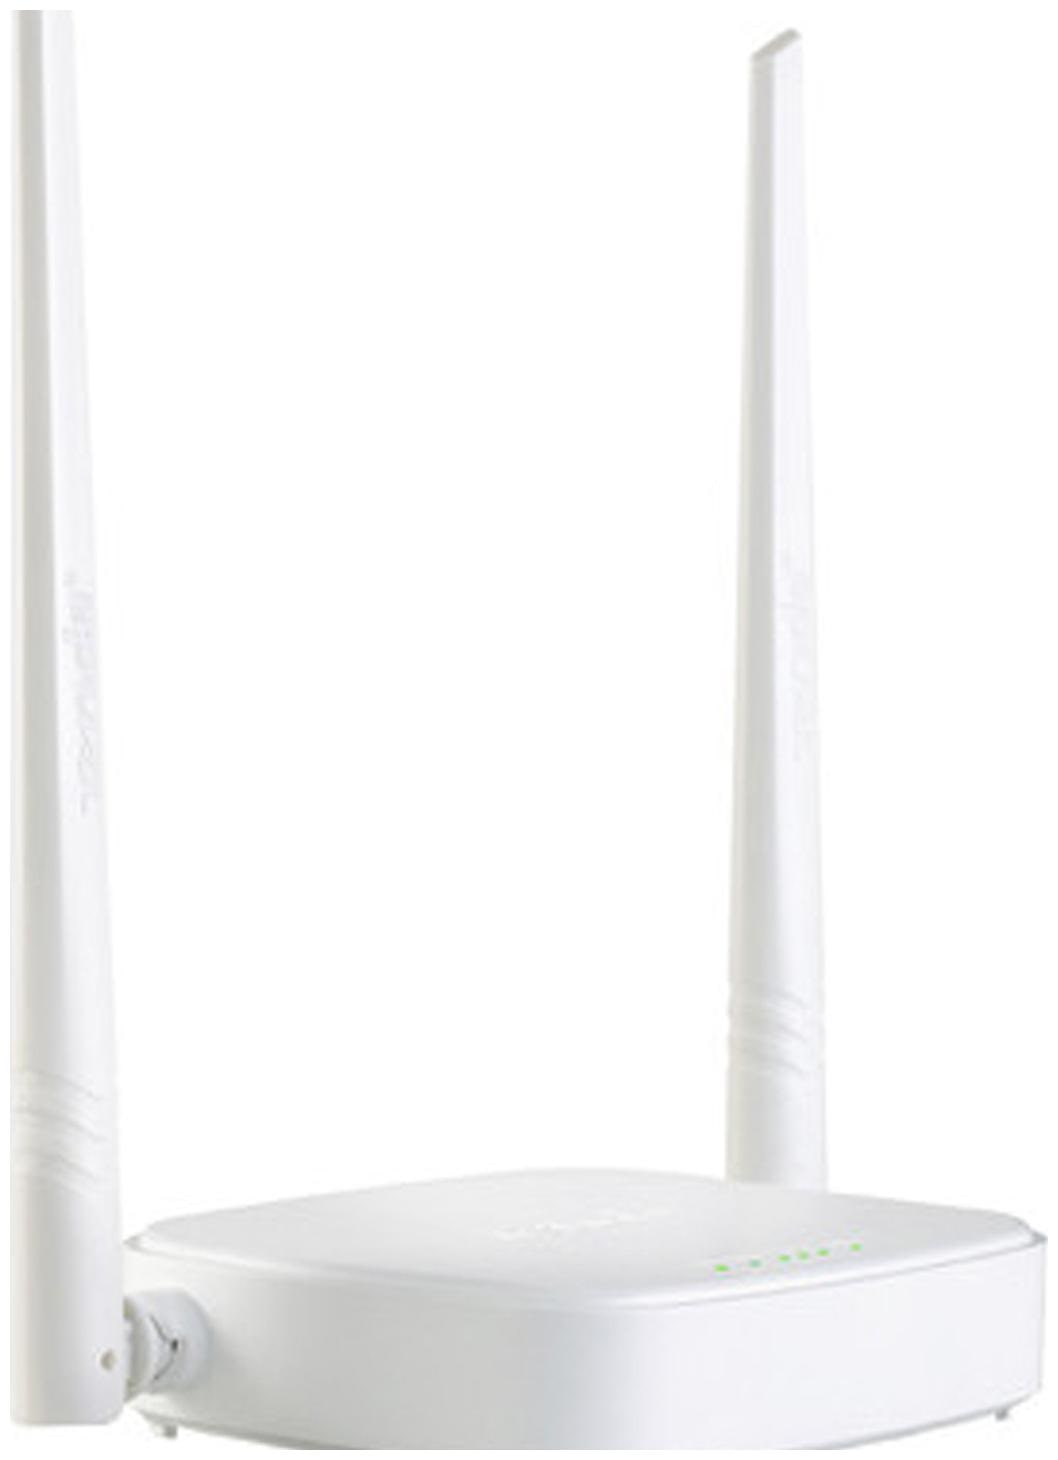 Tenda N301/N300 300 Mbps WiFi Router  White